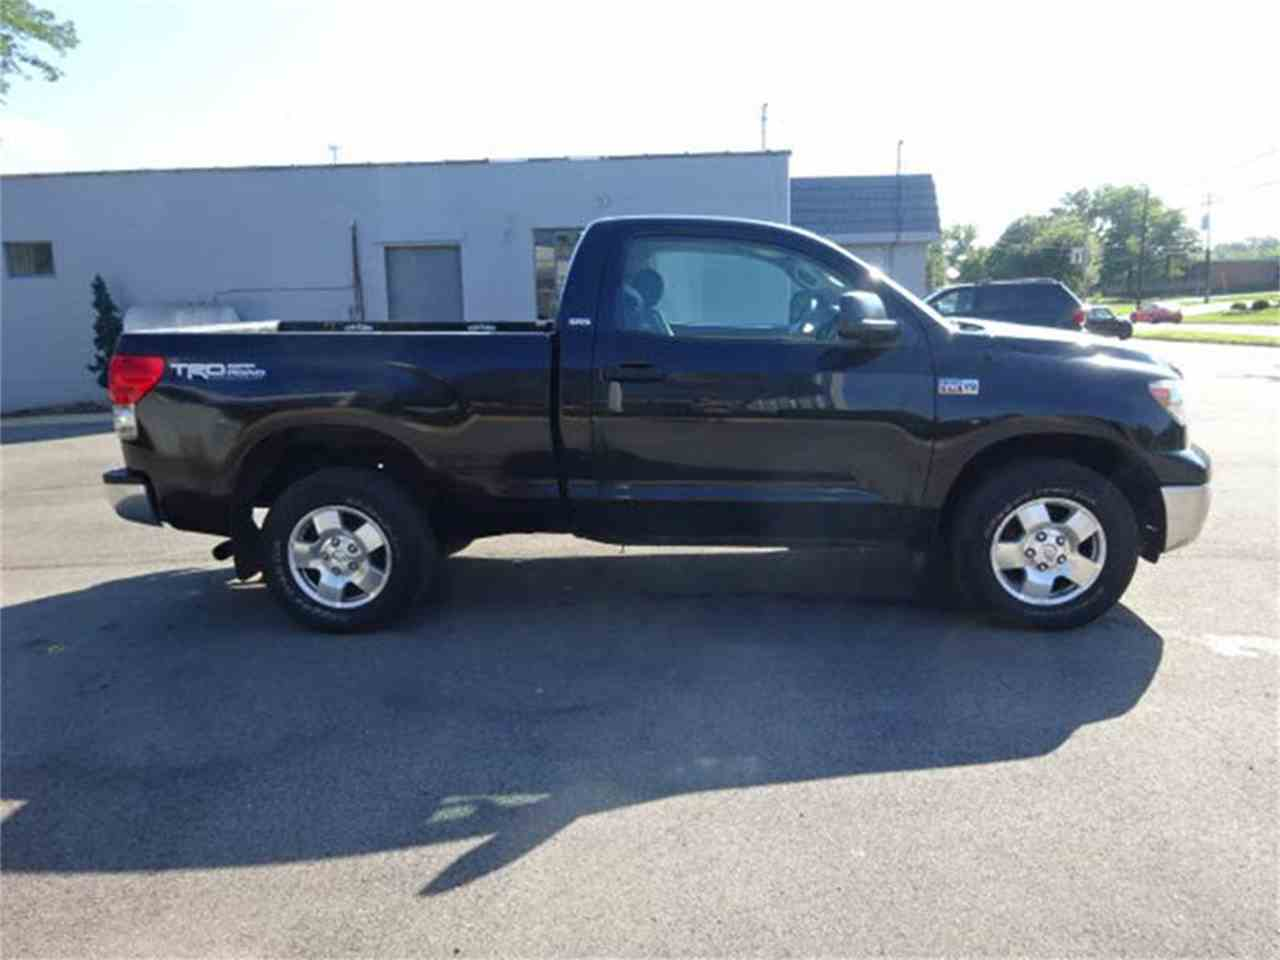 Large Picture of '08 Tundra - $11,000.00 - MBKP